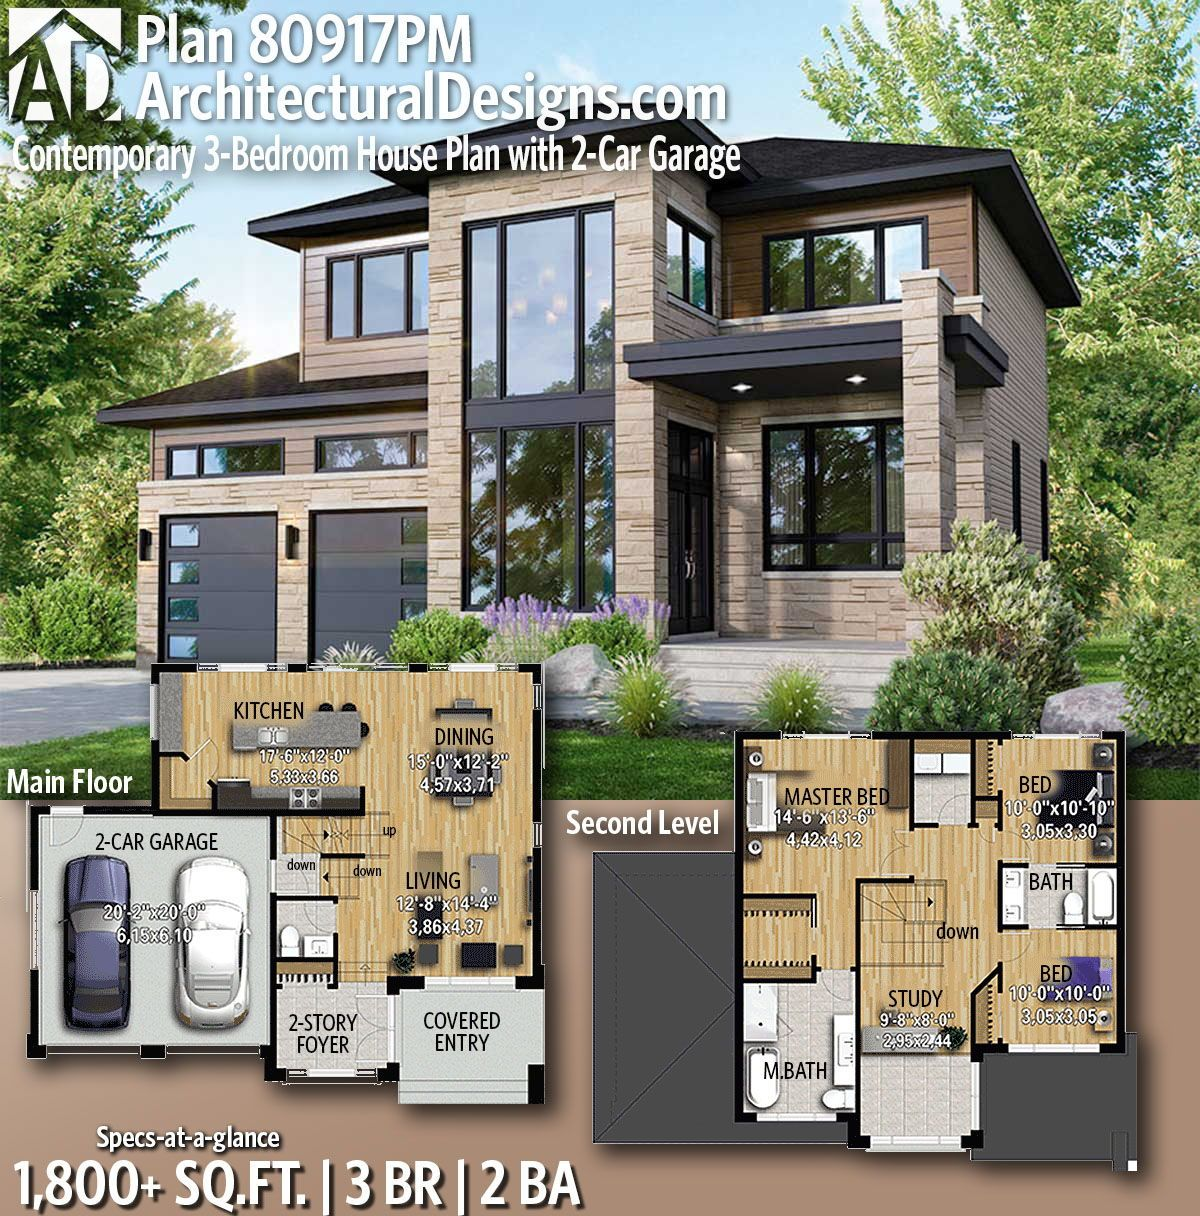 Plan 80917pm Contemporary 3 Bedroom House Plan With 2 Car Garage